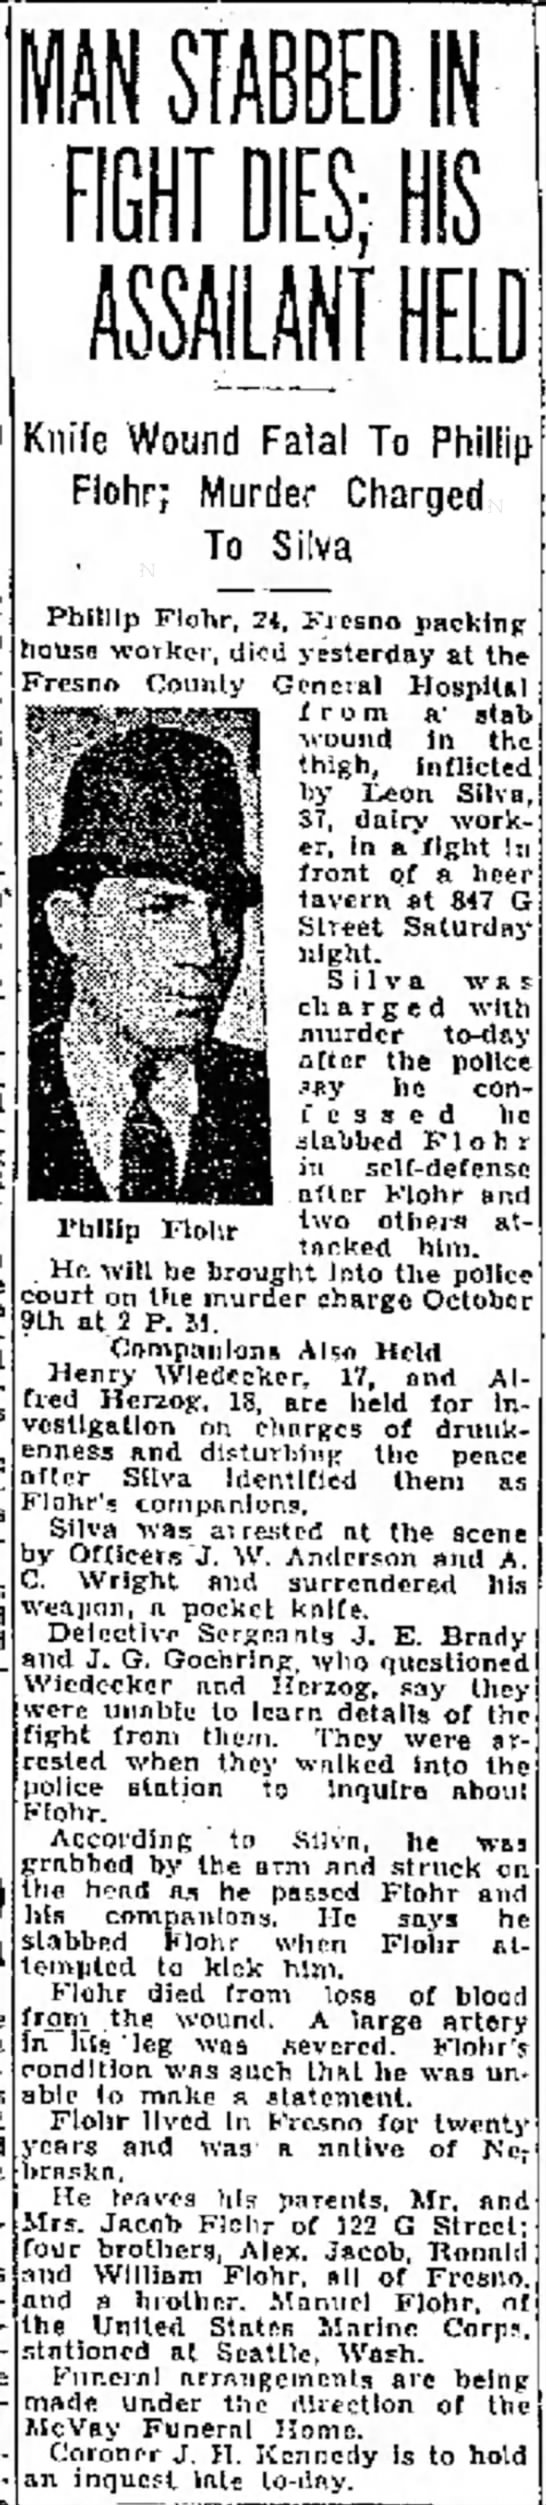 Phillip Flohr, Fatal Stabbing, 17 Sep 1934, The Fresno Bee, Fresno, CA - To of of the San valuation at the power both...